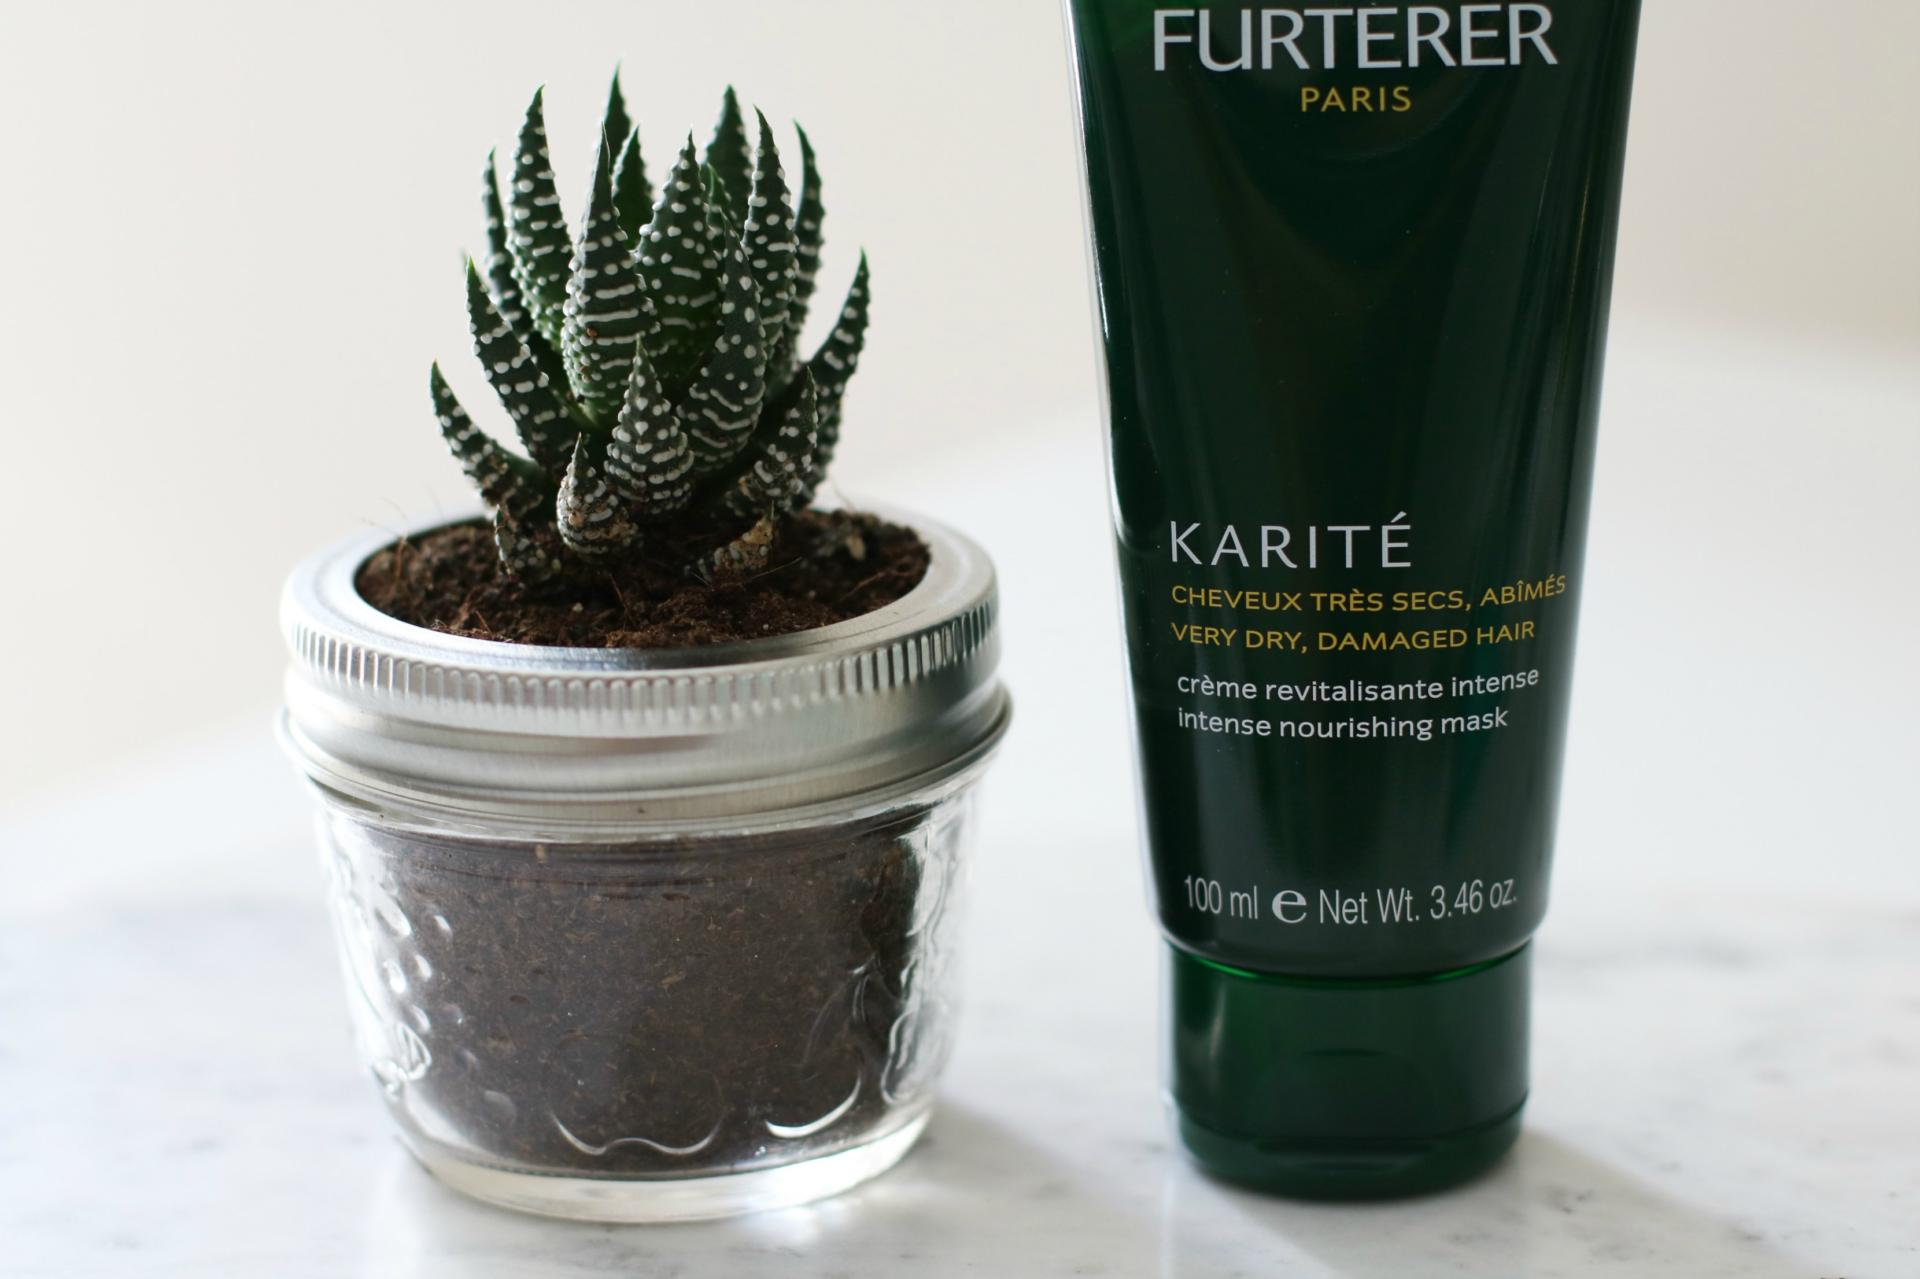 René Furterer Karité Intense Nourishing Mask